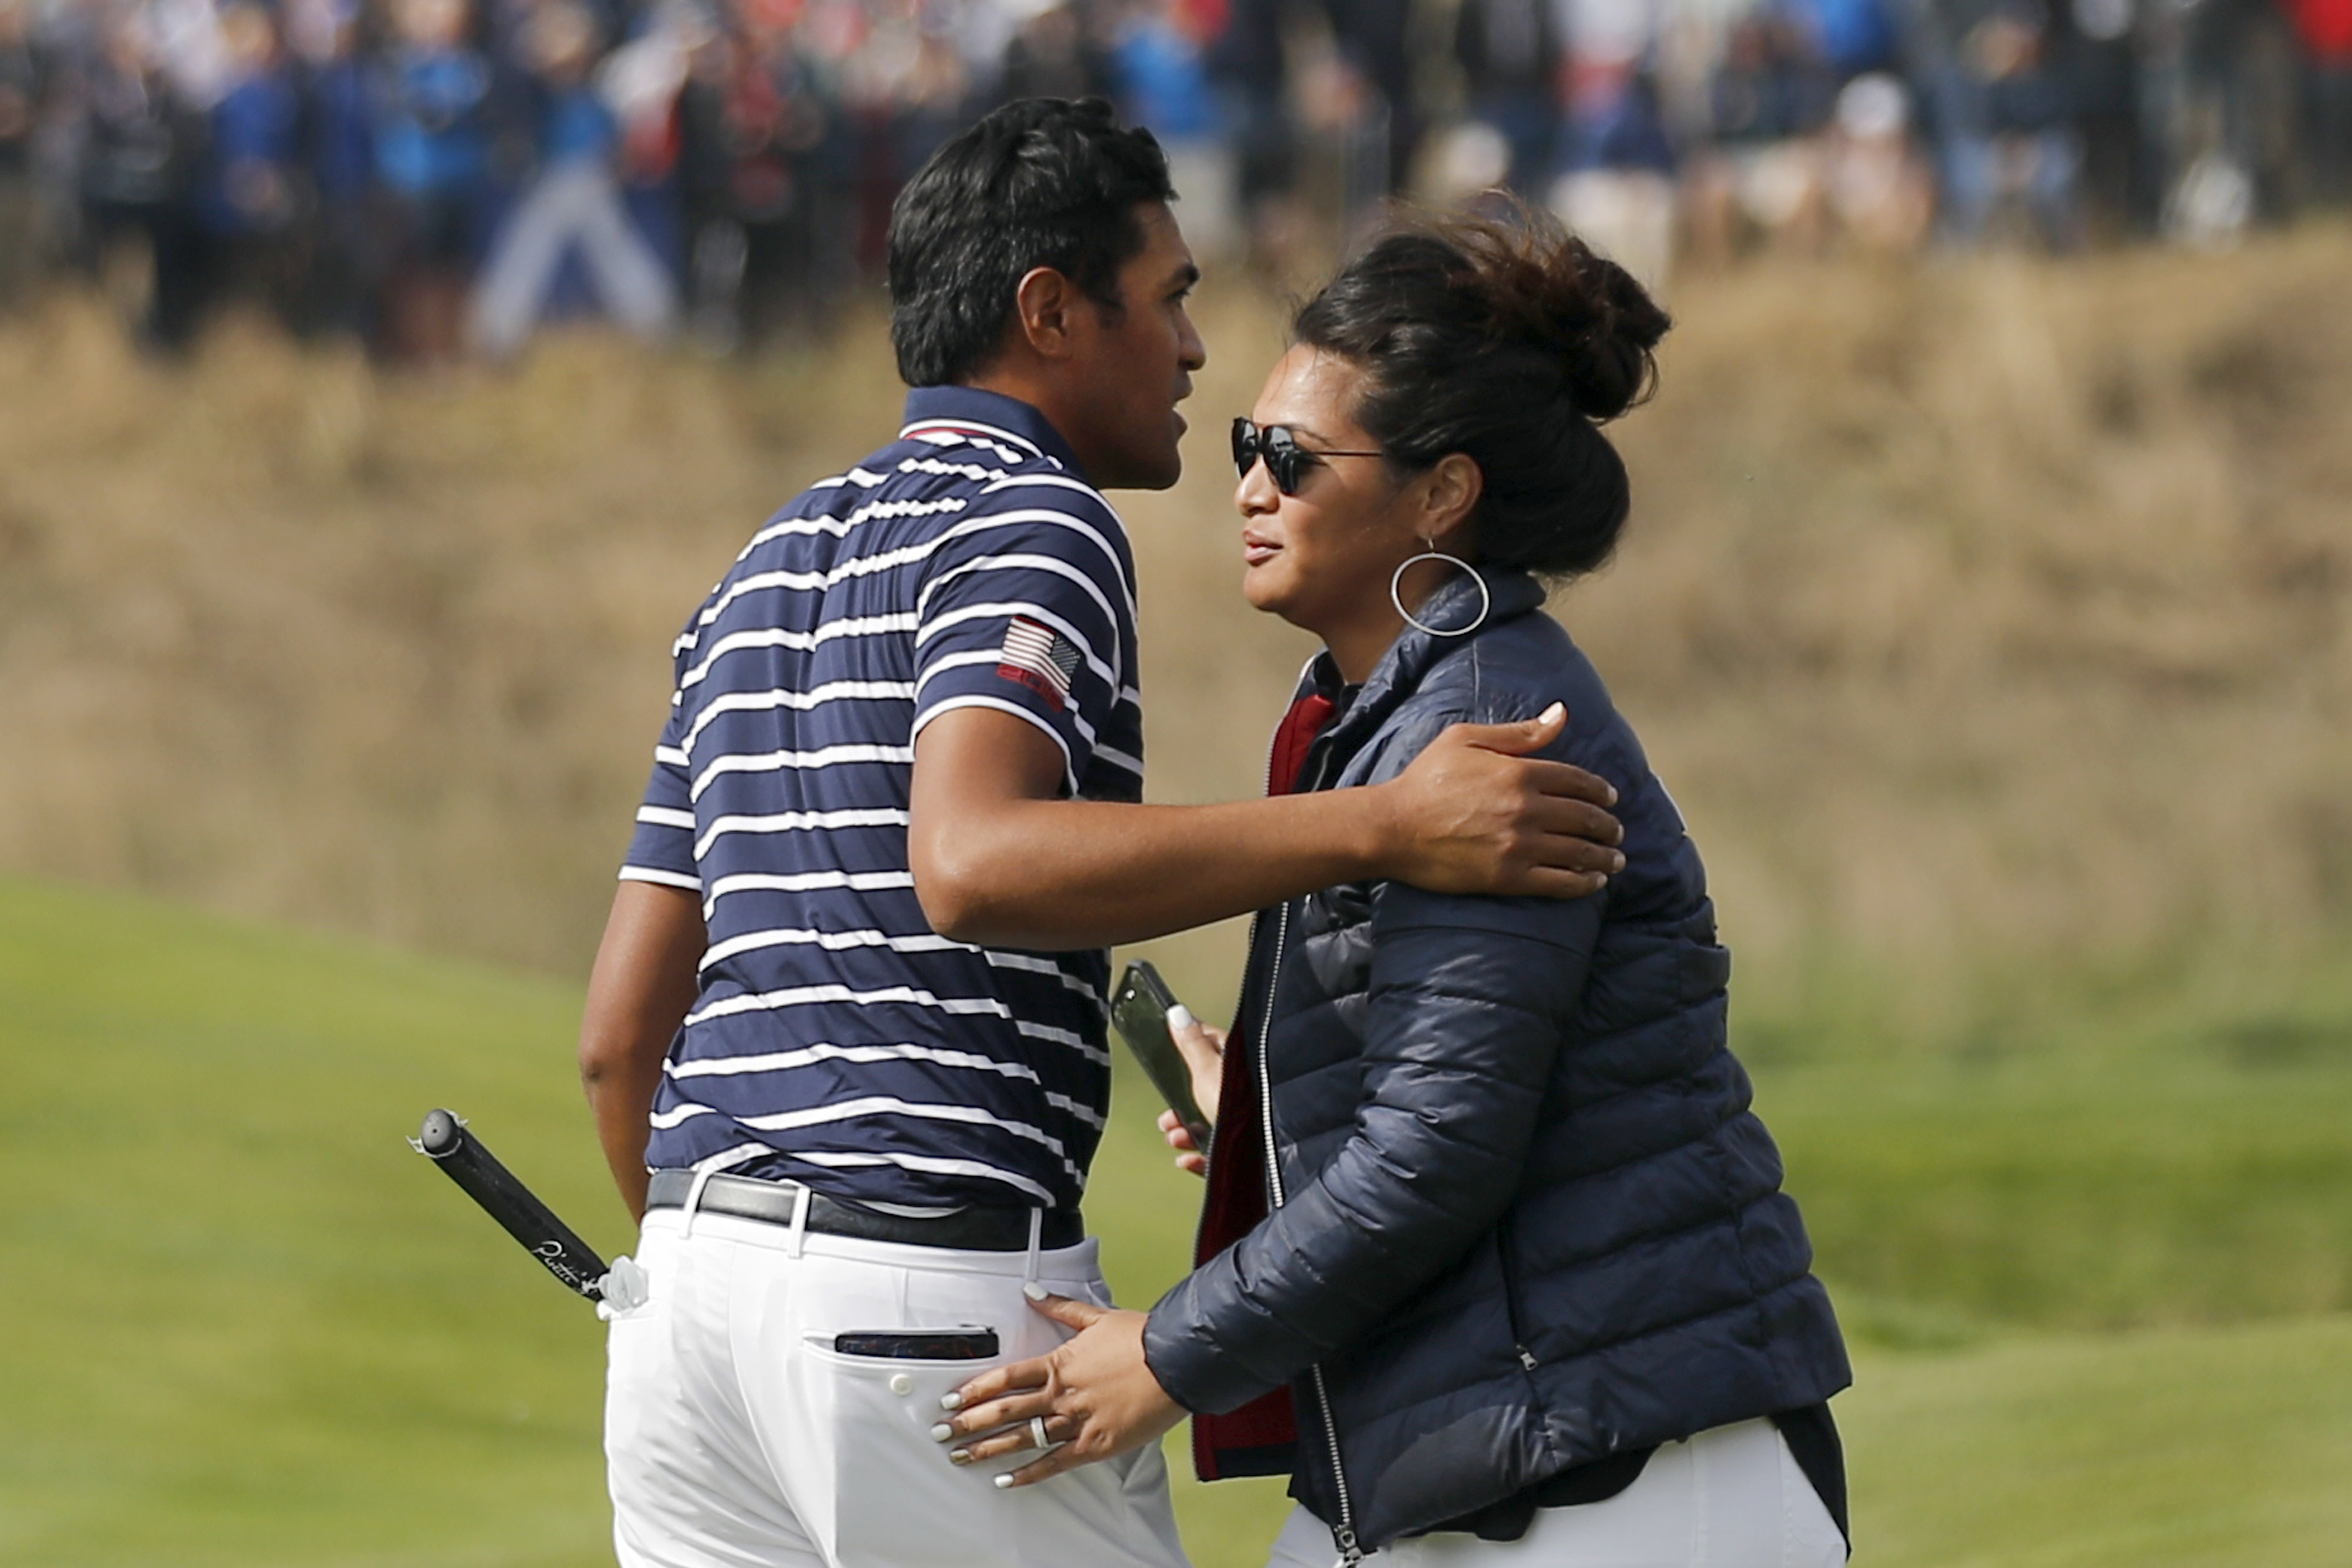 Tony Finau is congratulated by his wife, Alayna Galea'i-Finau, after winning his fourball match with his teammate Brooks Koepka on the opening day of the 42nd Ryder Cup at Le Golf National in Saint-Quentin-en-Yvelines, outside Paris, France, Friday, Sept. 28, 2018.